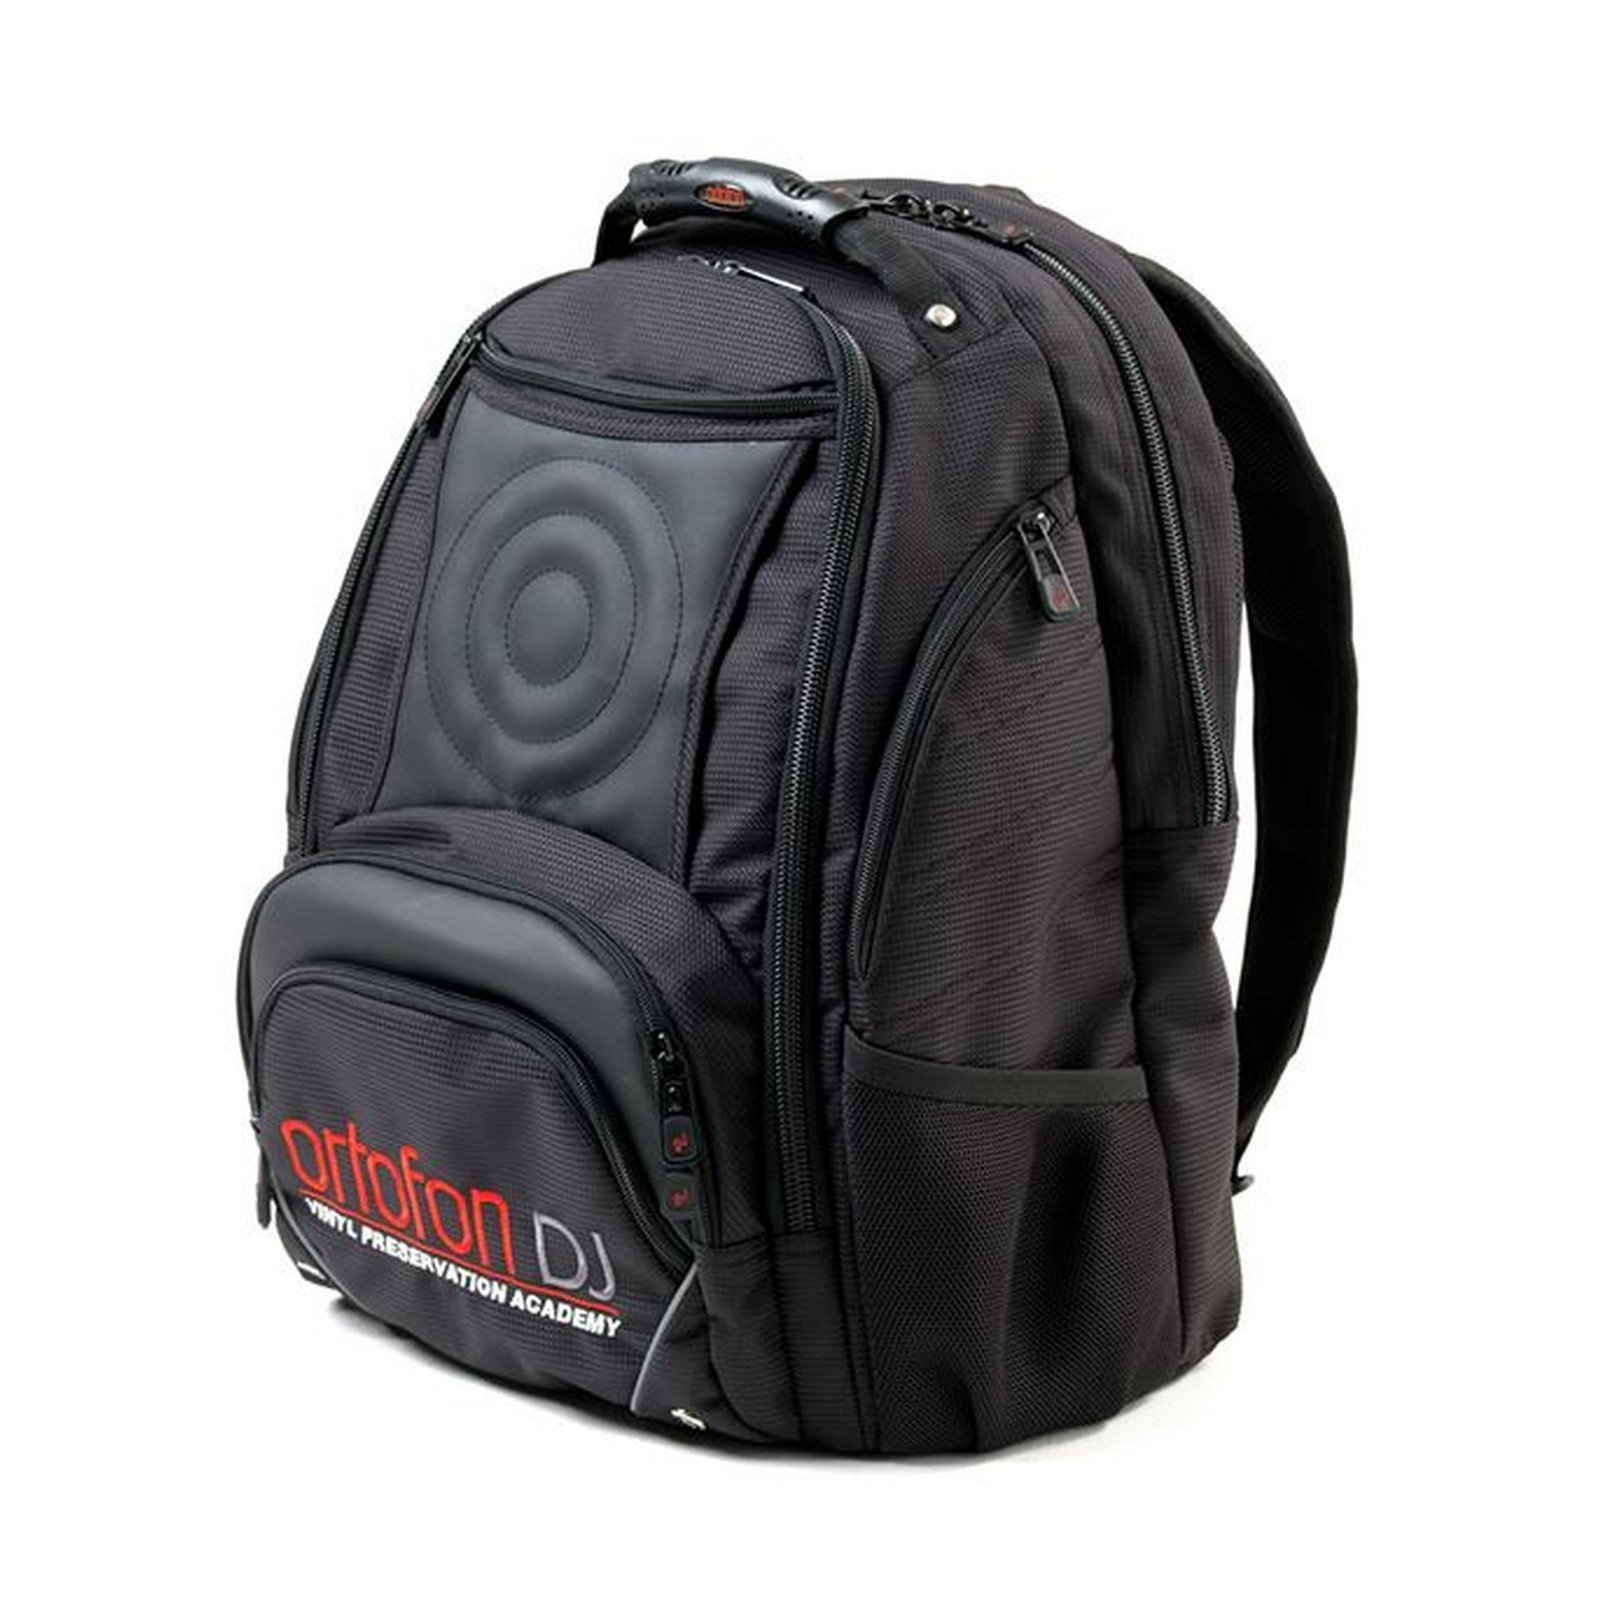 Ortofon Deluxe DJ Bag | Multi Purpose Transport Bag for Mixers Laptops Cables Headphones